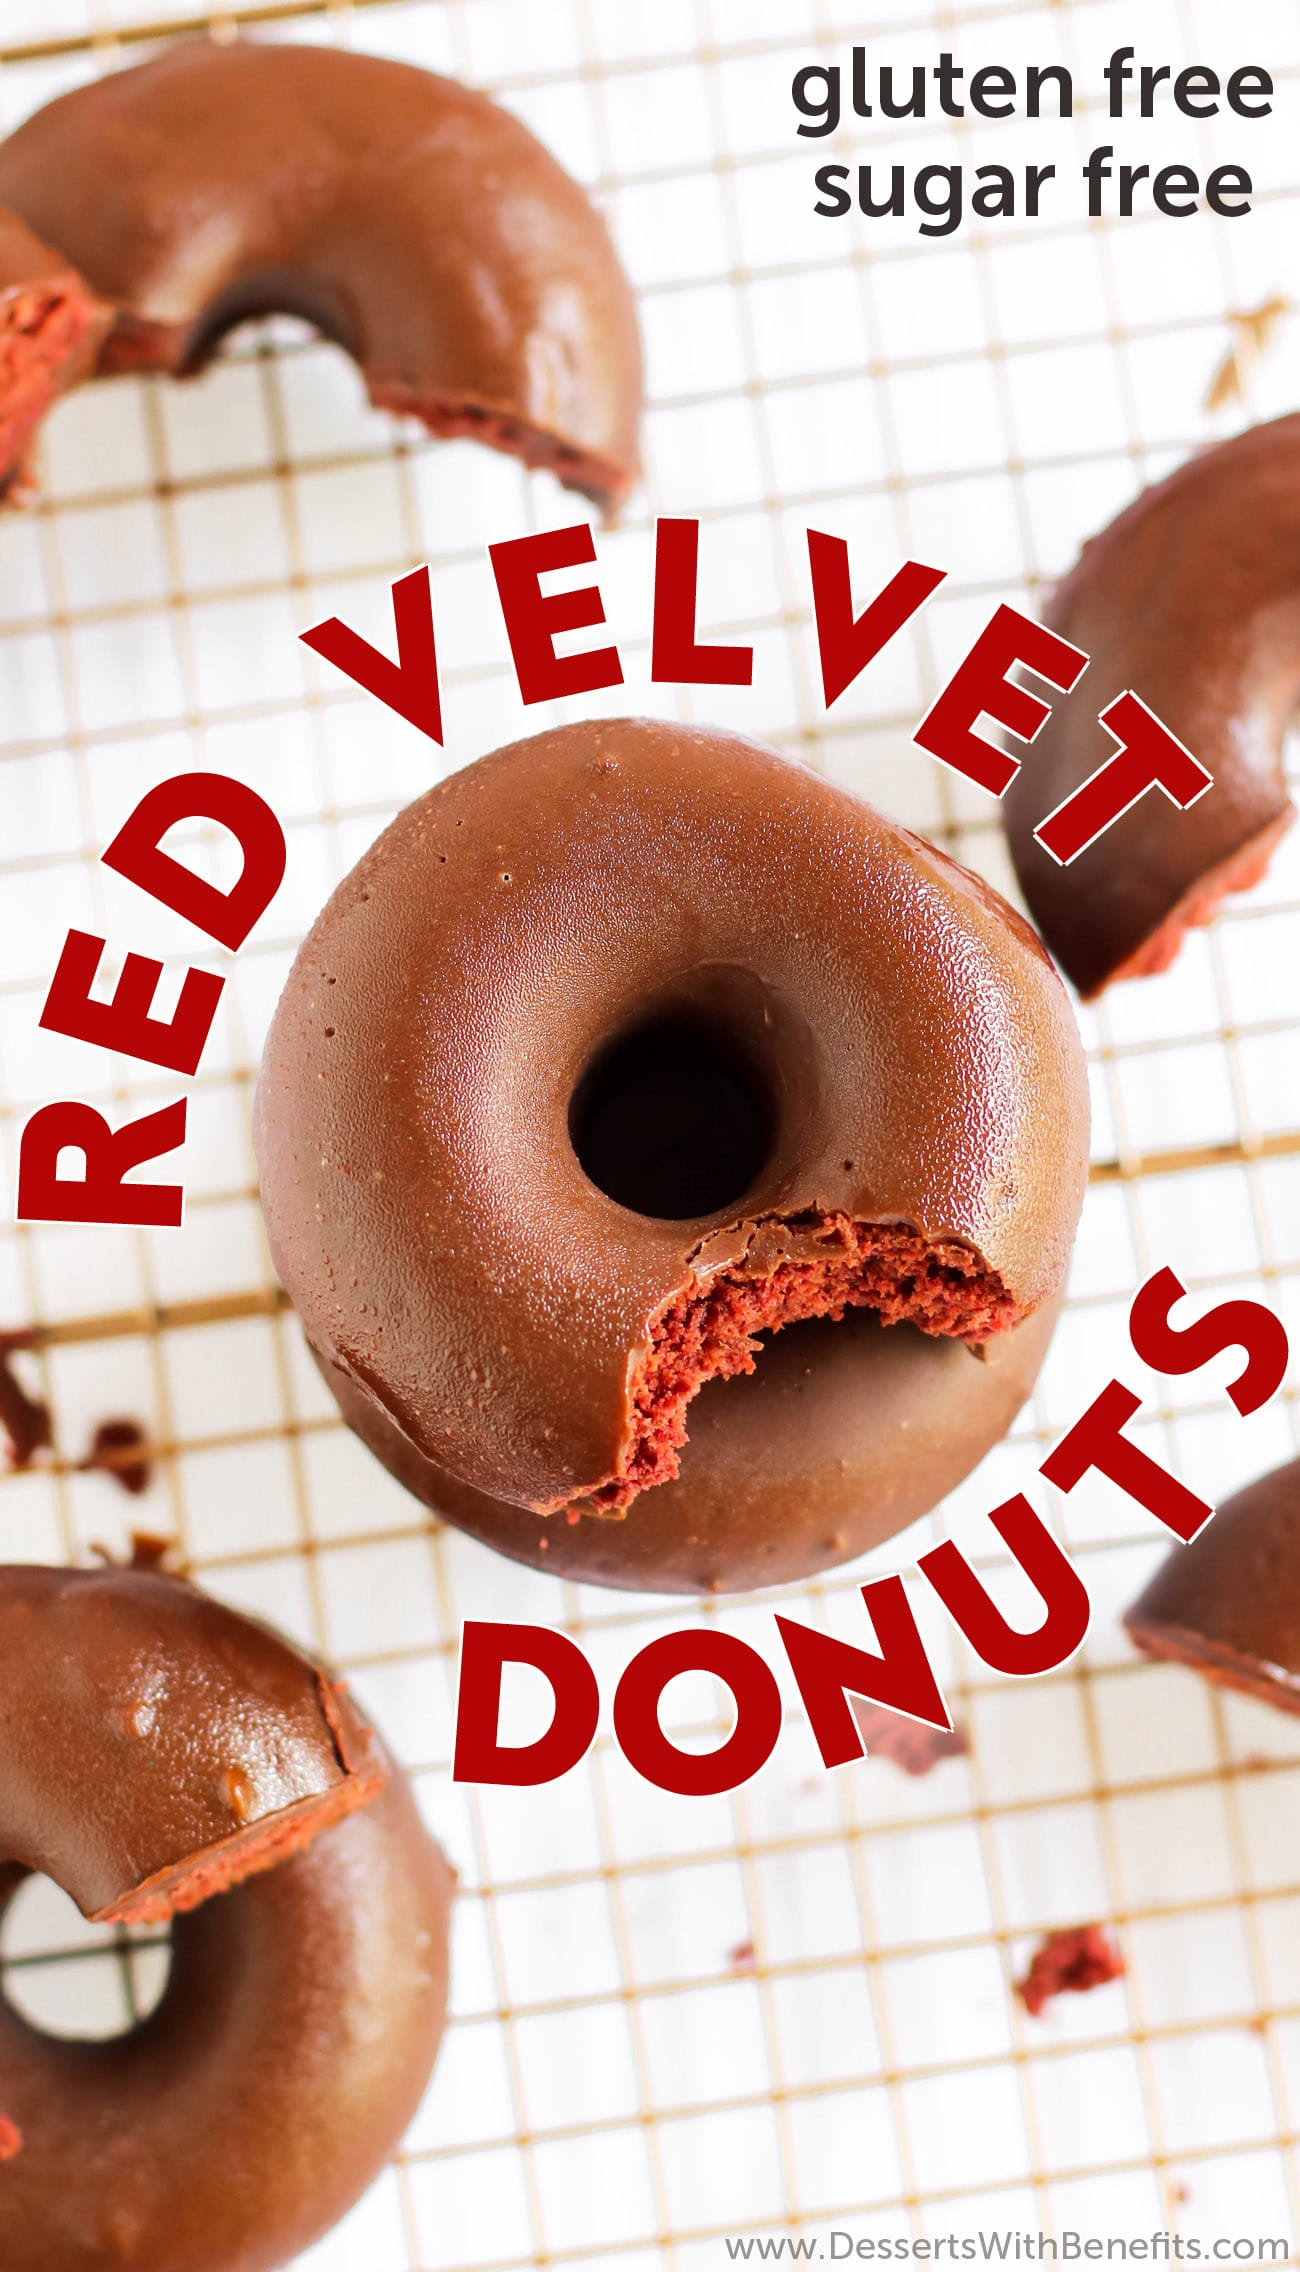 Red Velvet Cake + Donuts = Red Velvet Cake Donuts! They're sweet, moist, and ultra fluffy, they don't taste low calorie, low fat, sugar free, or gluten free at all, yet they are! They're ALL NATURAL and made without any artificial food coloring whatsoever! Can you guess the secret ingredient that makes these Red Velvet Donuts red? #glutenfreedonuts #glutenfreedessert #redvelvet #redvelvetcake #sugarfree #wholegrain #lowfat #lowcalorie #dairyfree